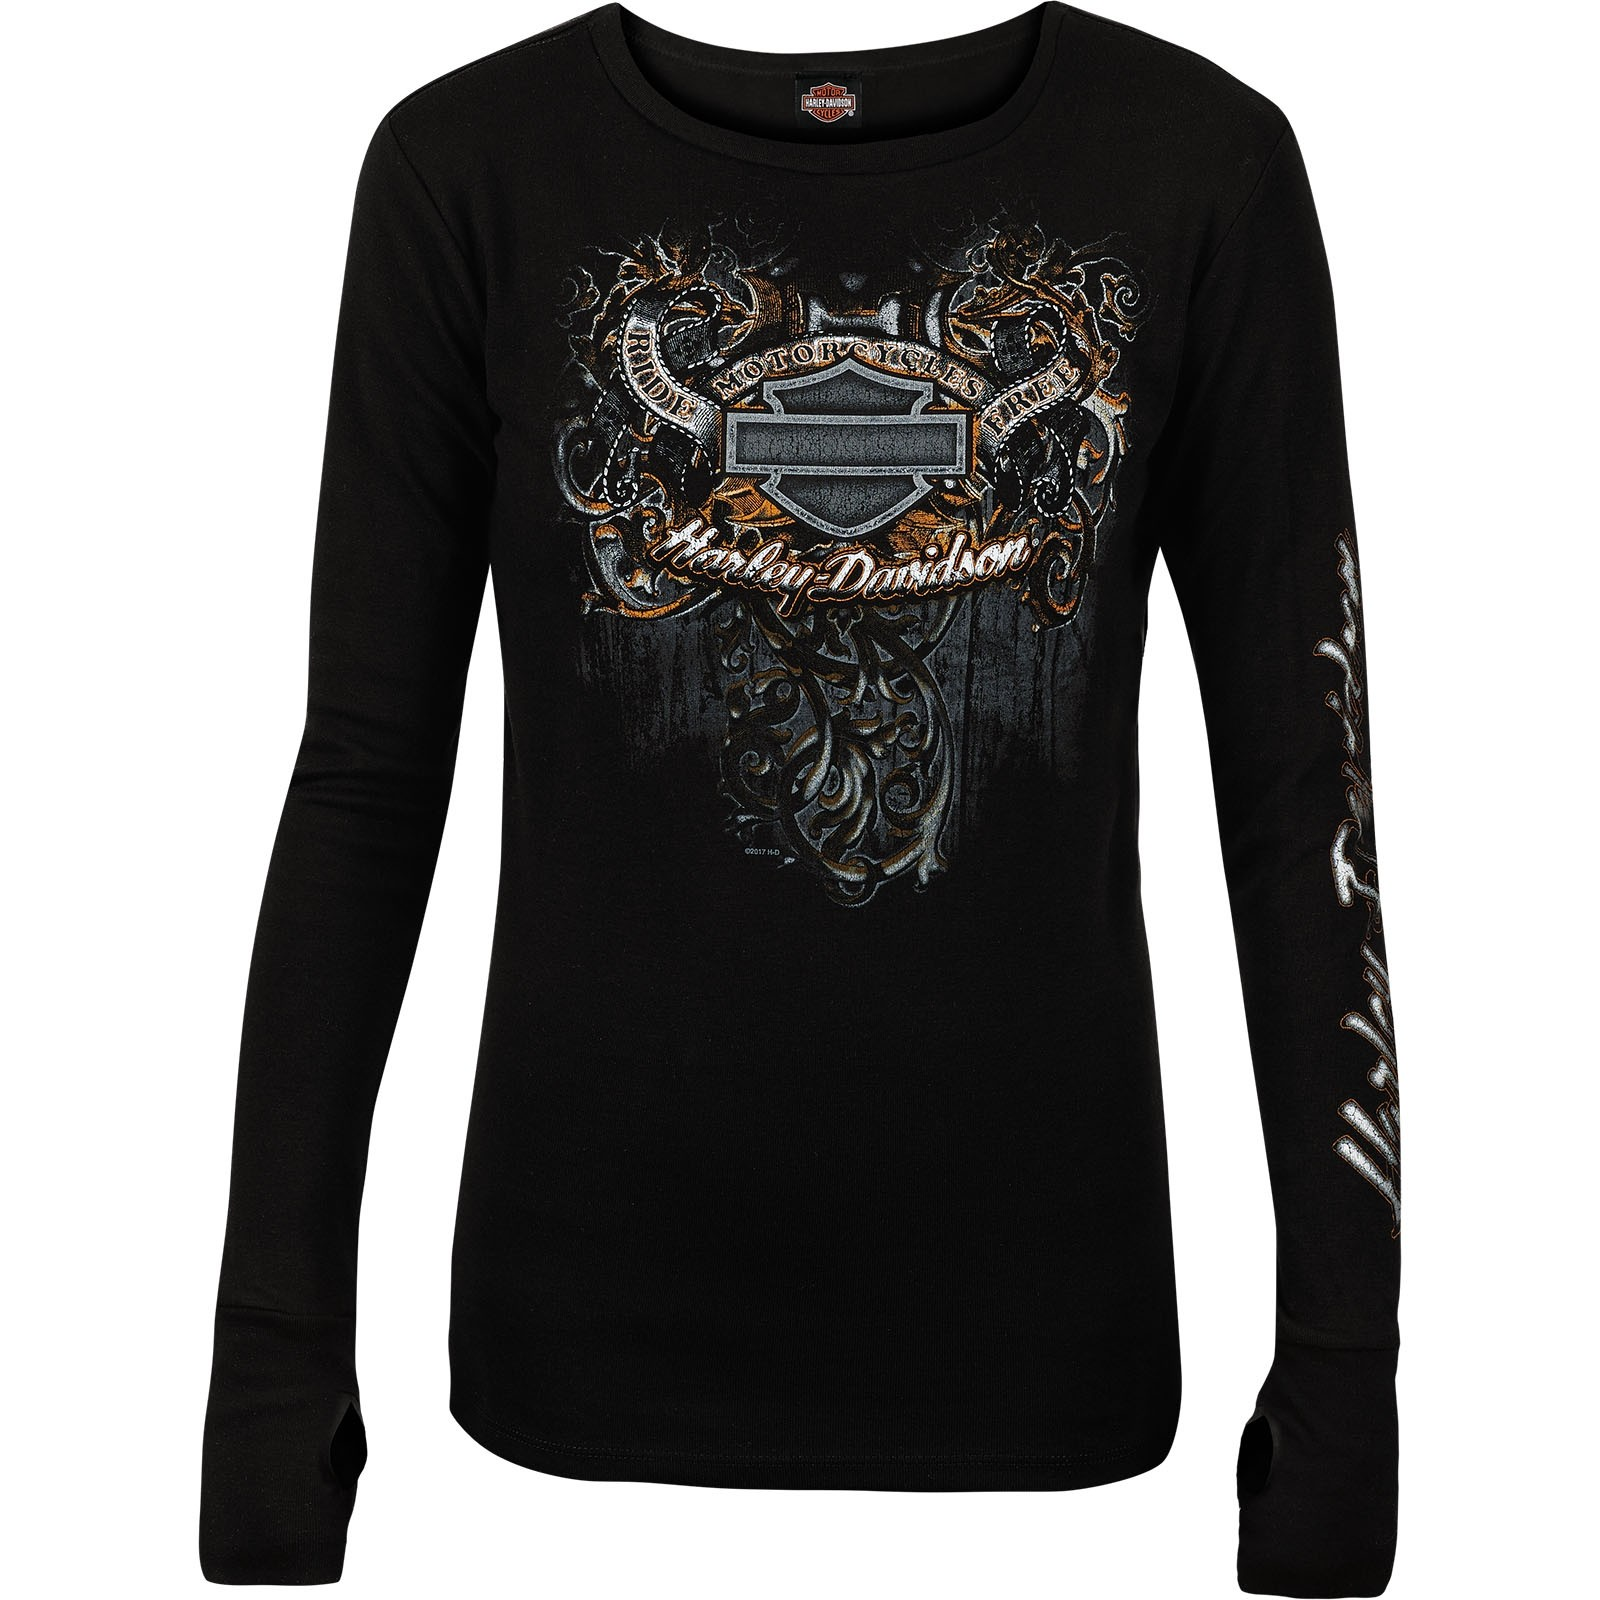 Harley-Davidson Women's Long-Sleeve Tee - Camp Humphreys | Worn Banner